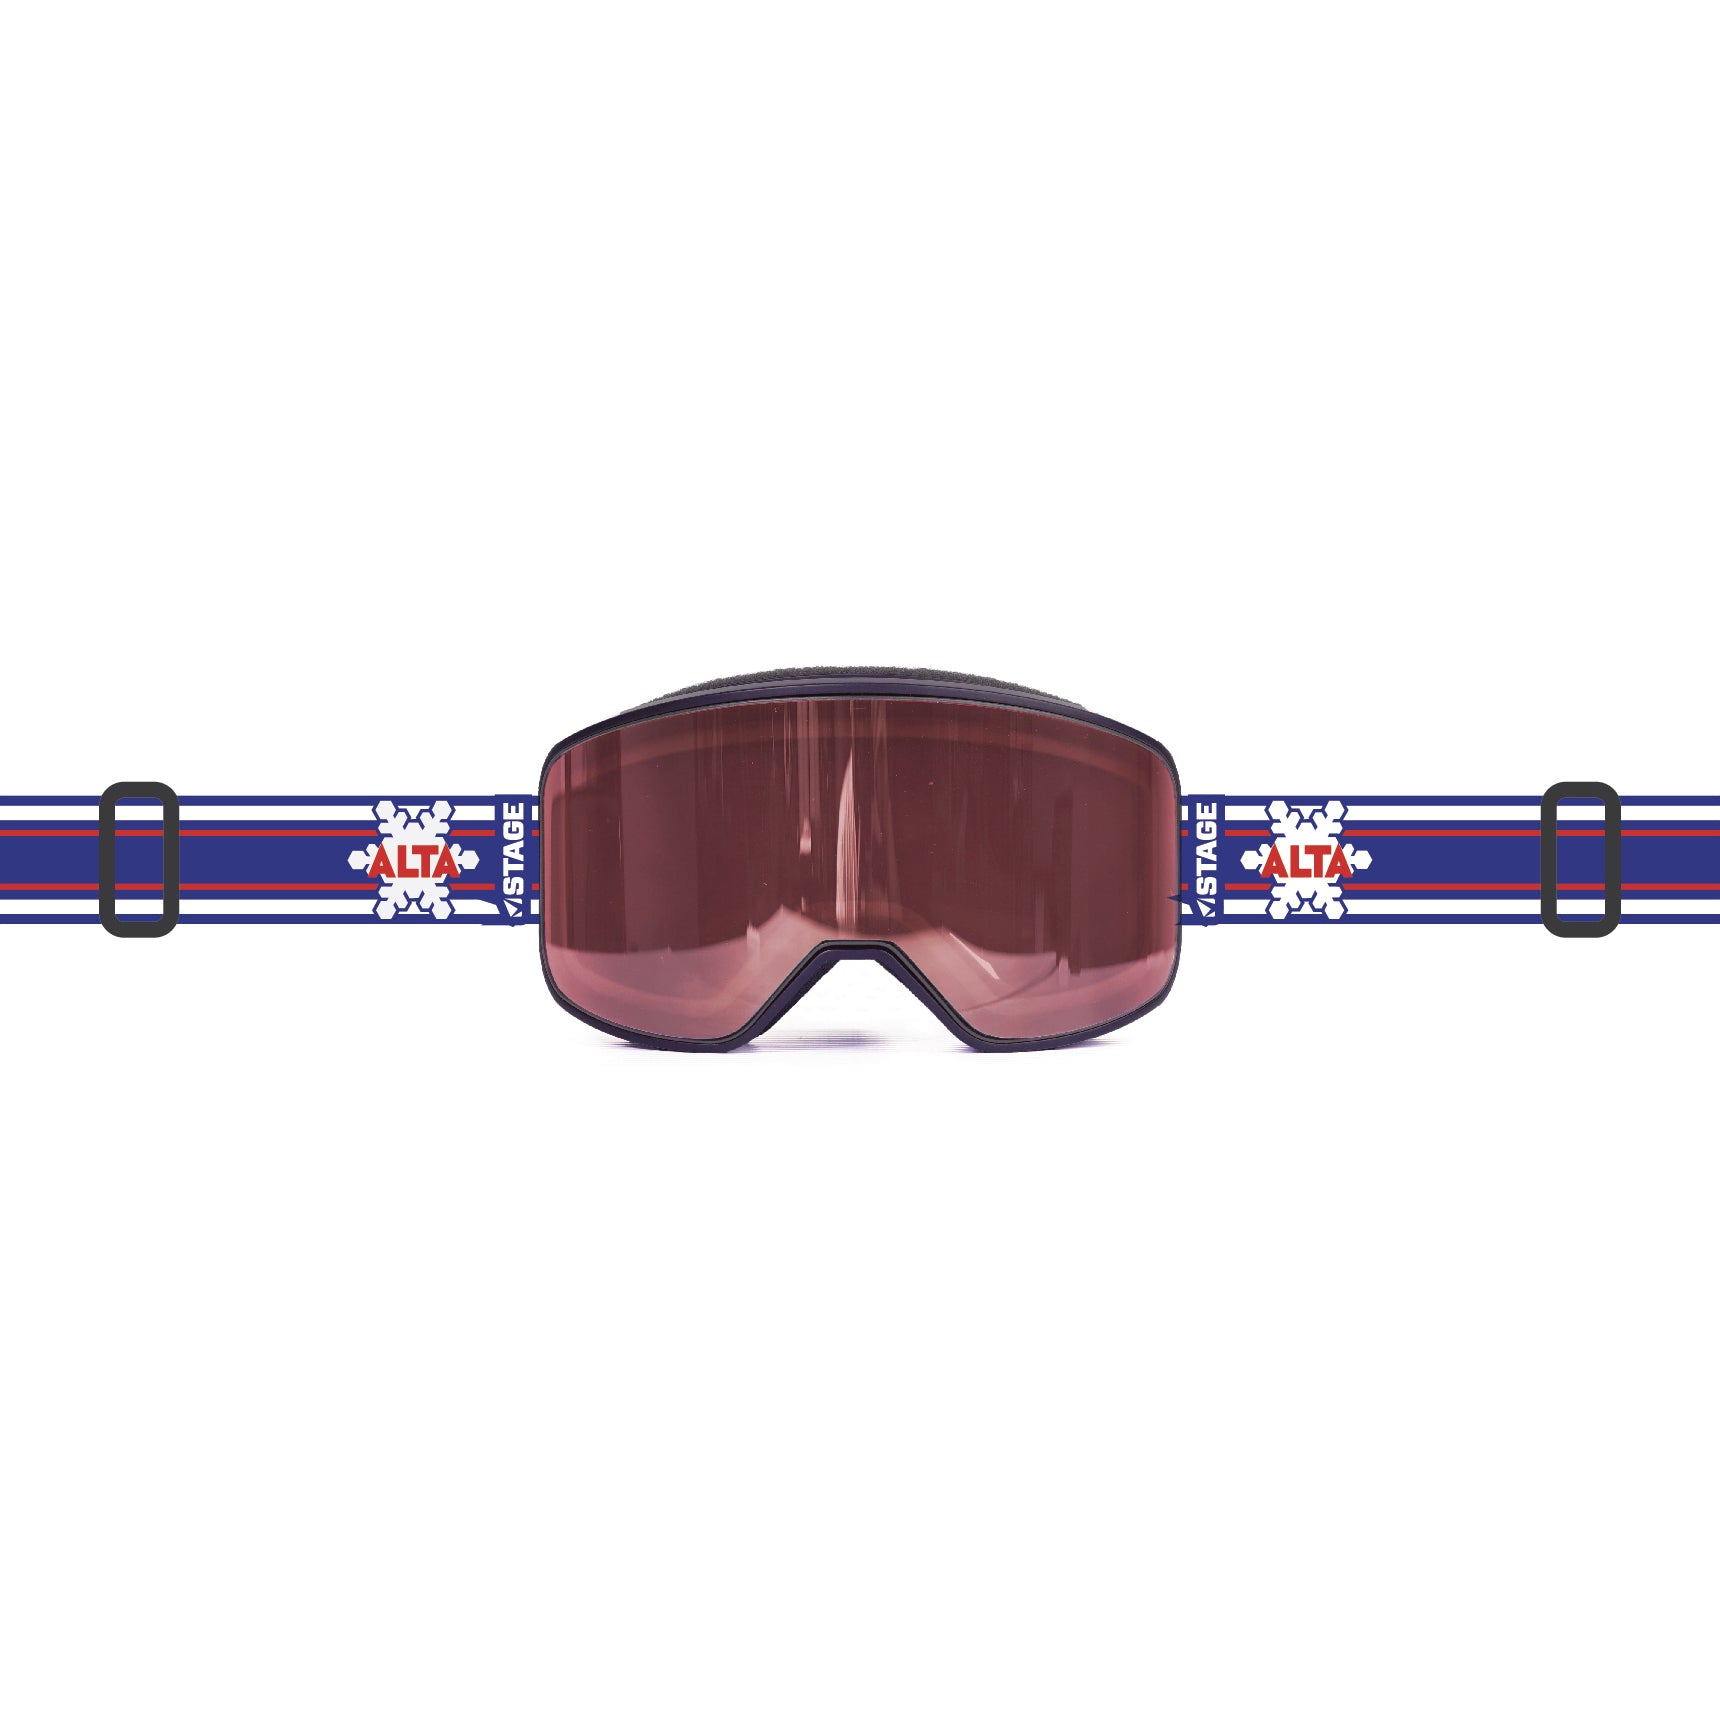 STAGE Prop Goggle -  Retro Blue ALTA Flake